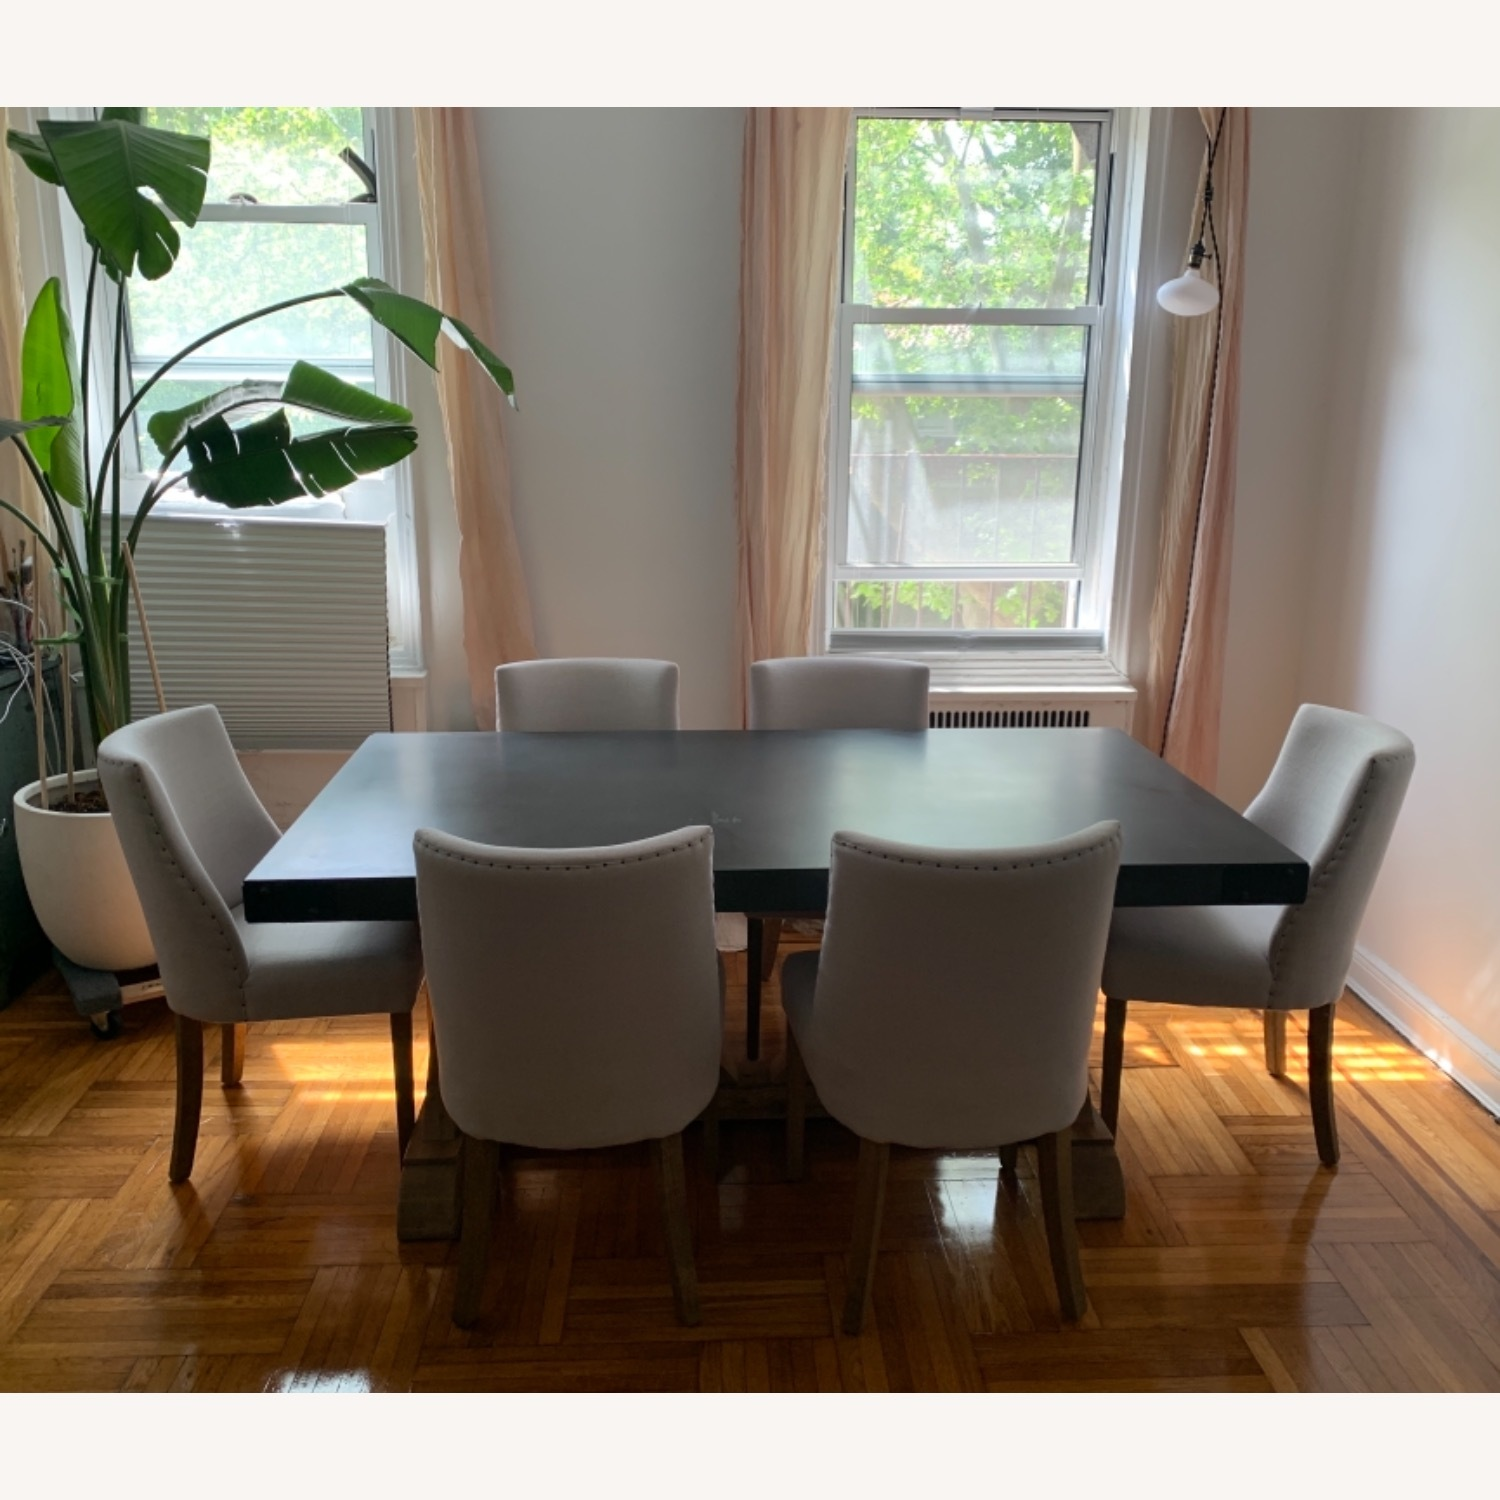 Restoration Hardware Salvaged Wood and Concrete Dining Table - image-16